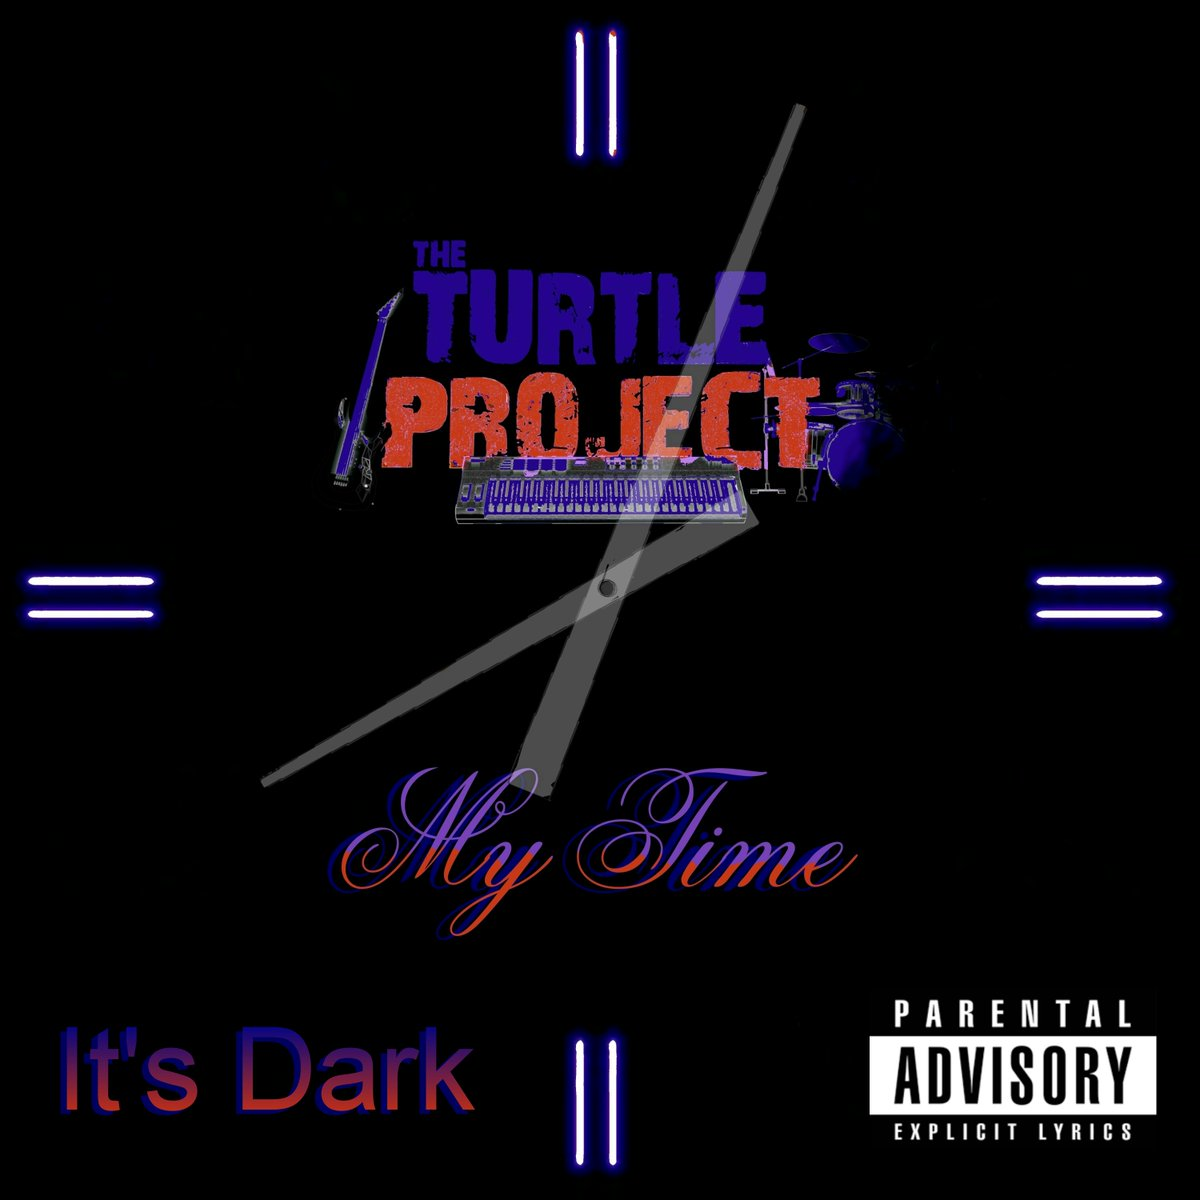 It`s Dark by The Turtle Project